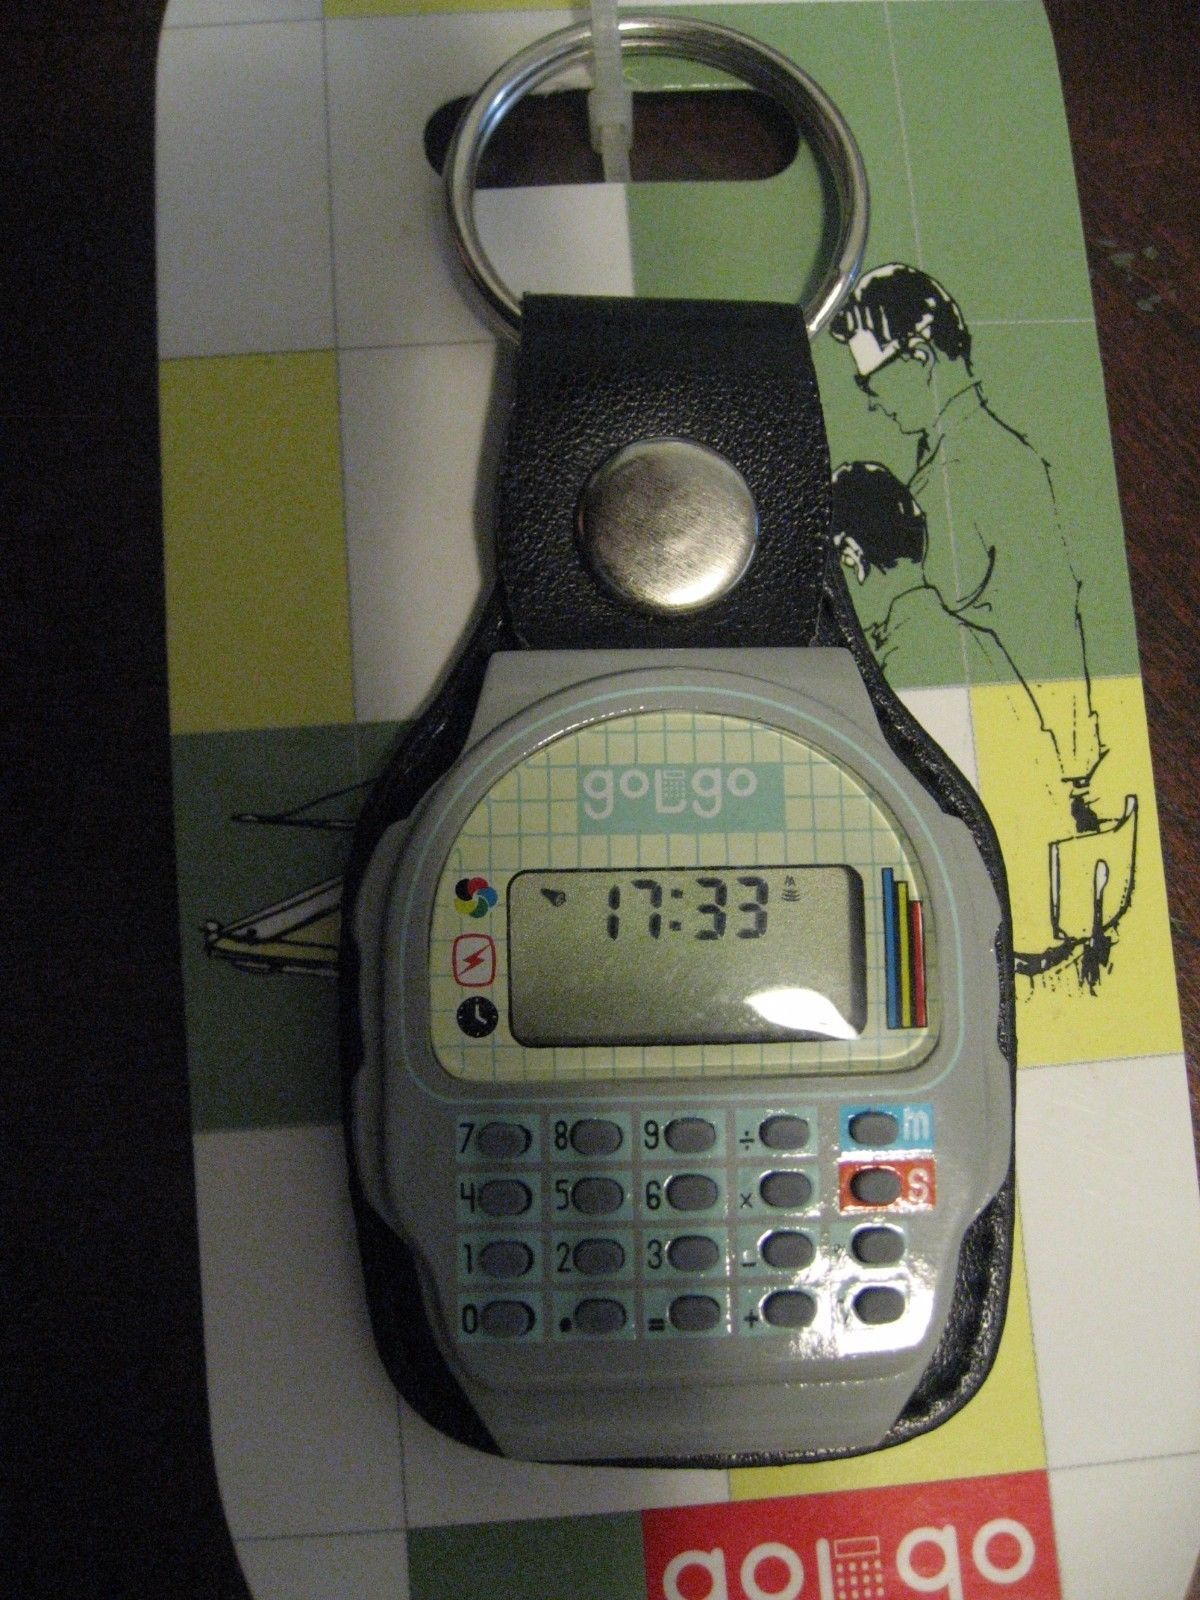 Primary image for Calculator Key chain for perfect give away gifts